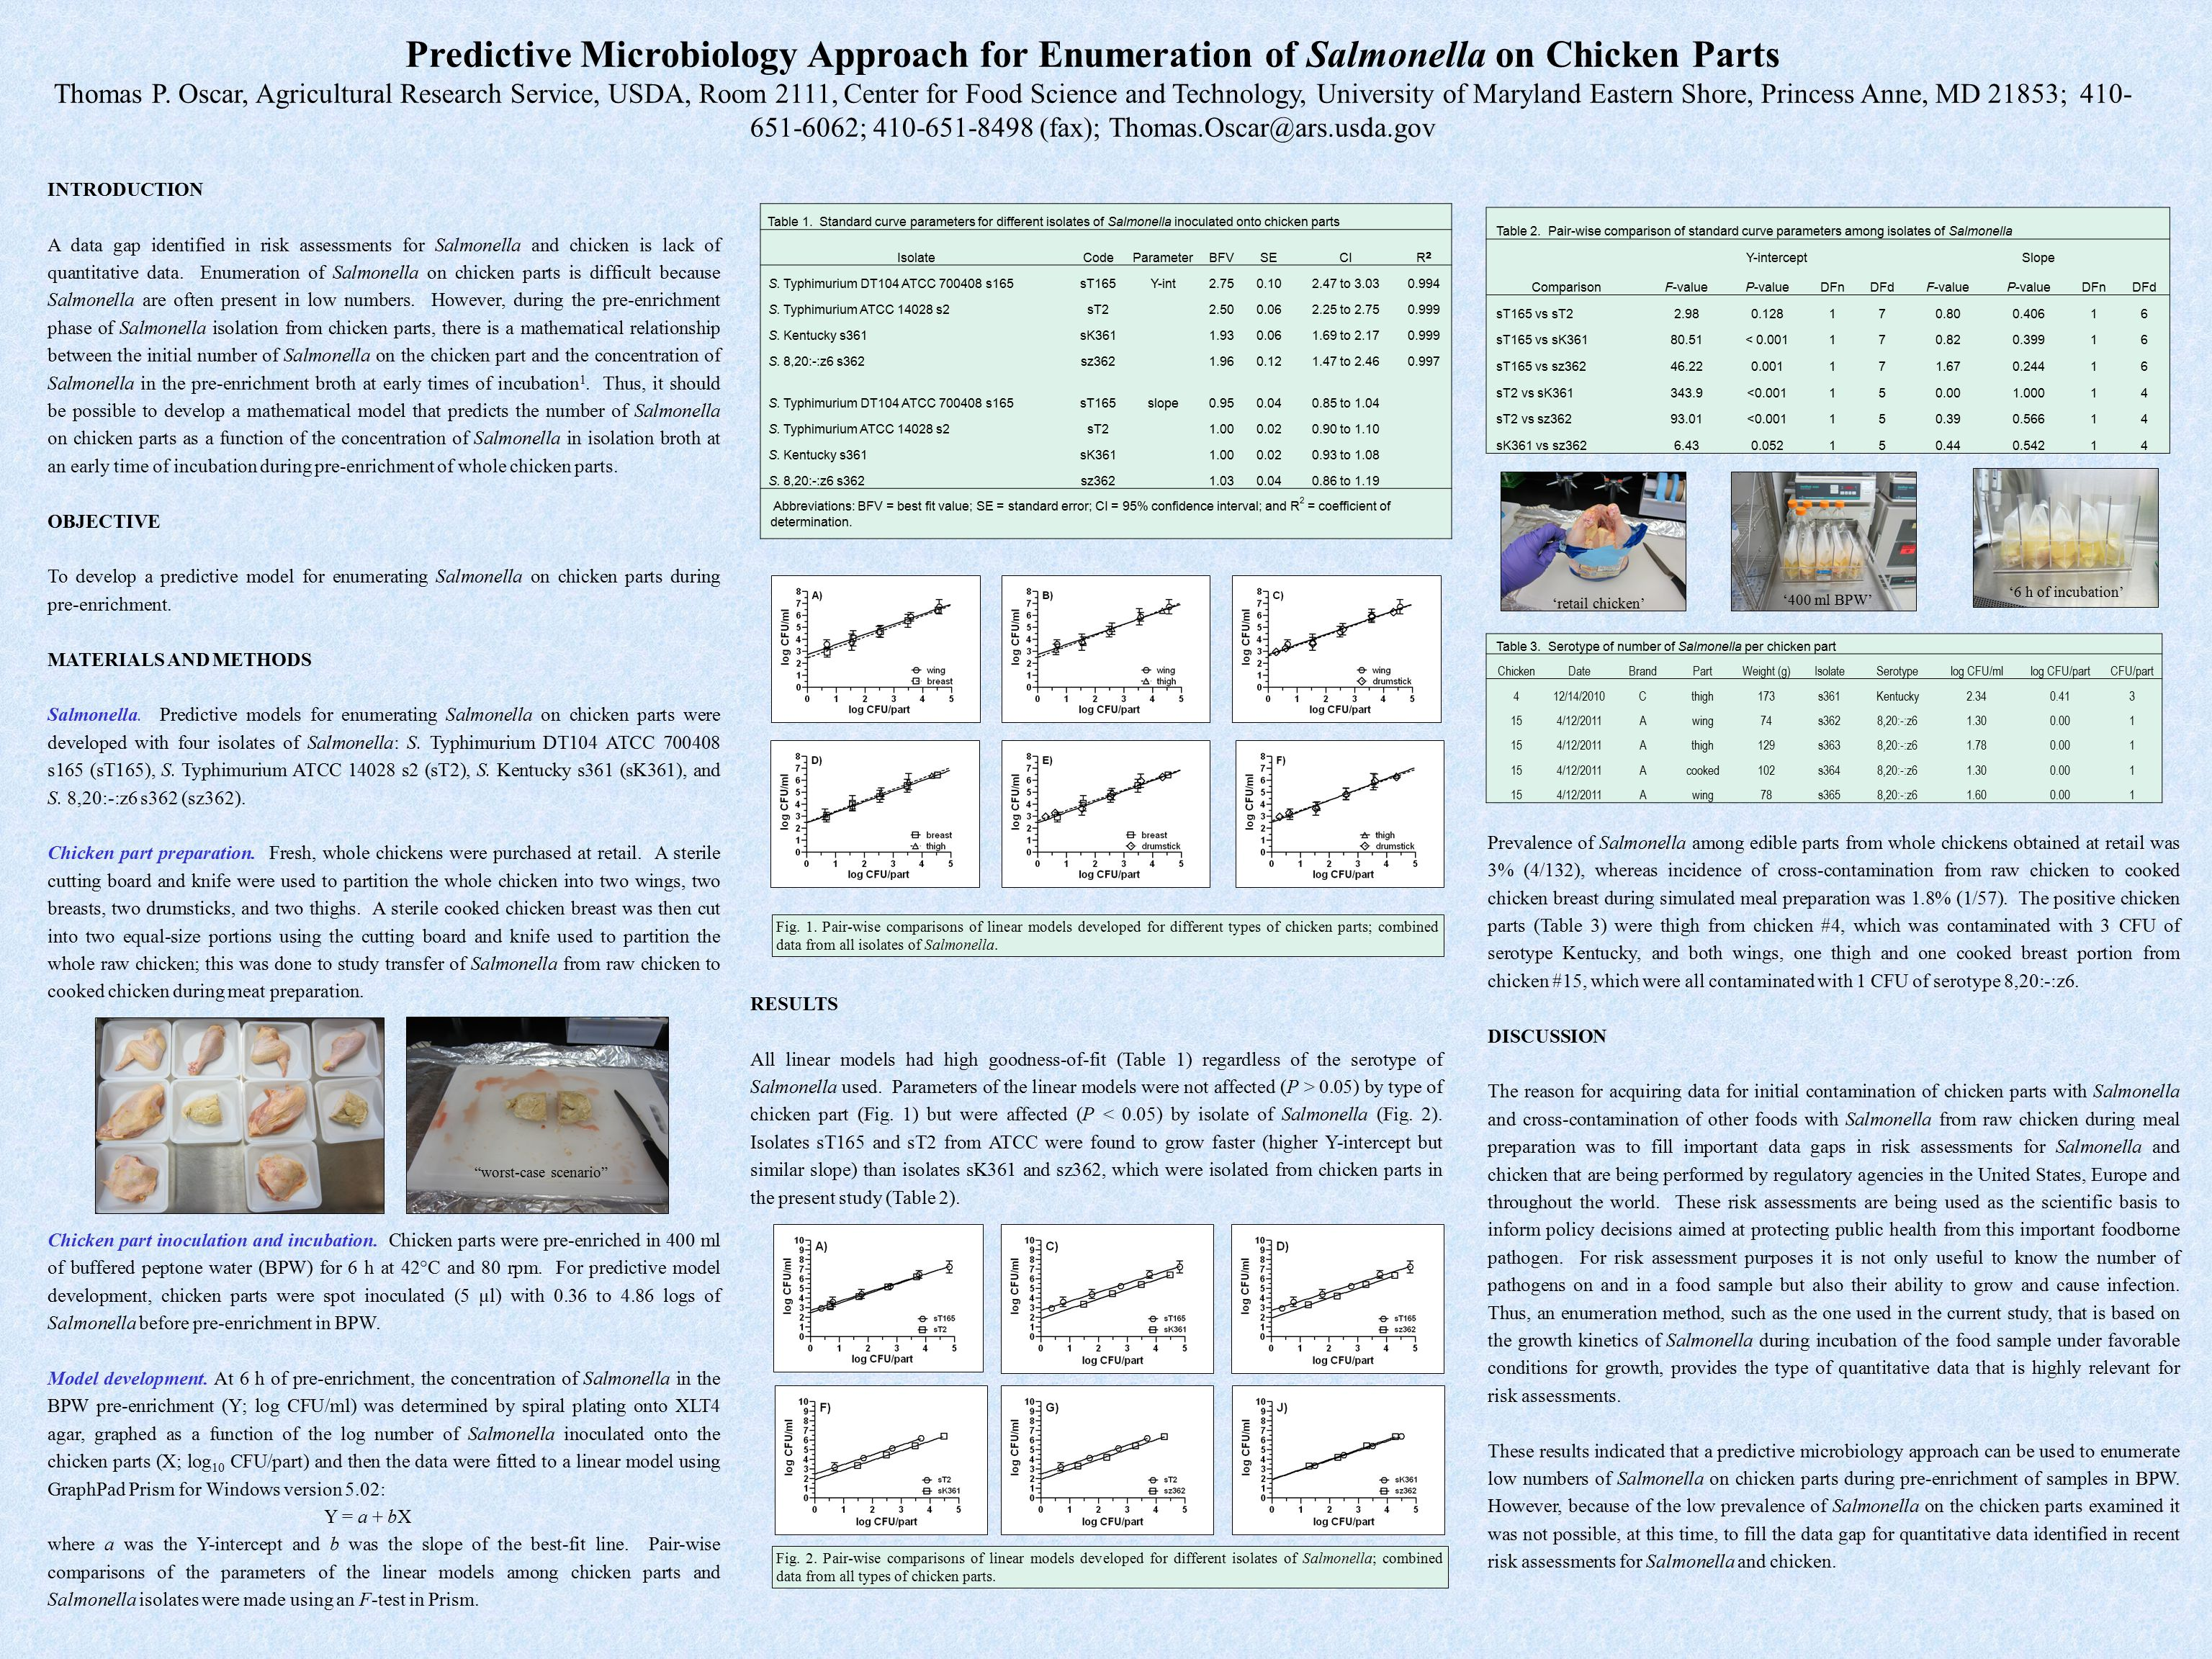 Predictive Microbiology Approach for Enumeration of Salmonella on Chicken Parts Thomas P. Oscar, Agricultural Research Service, USDA, Room 2111, Cente